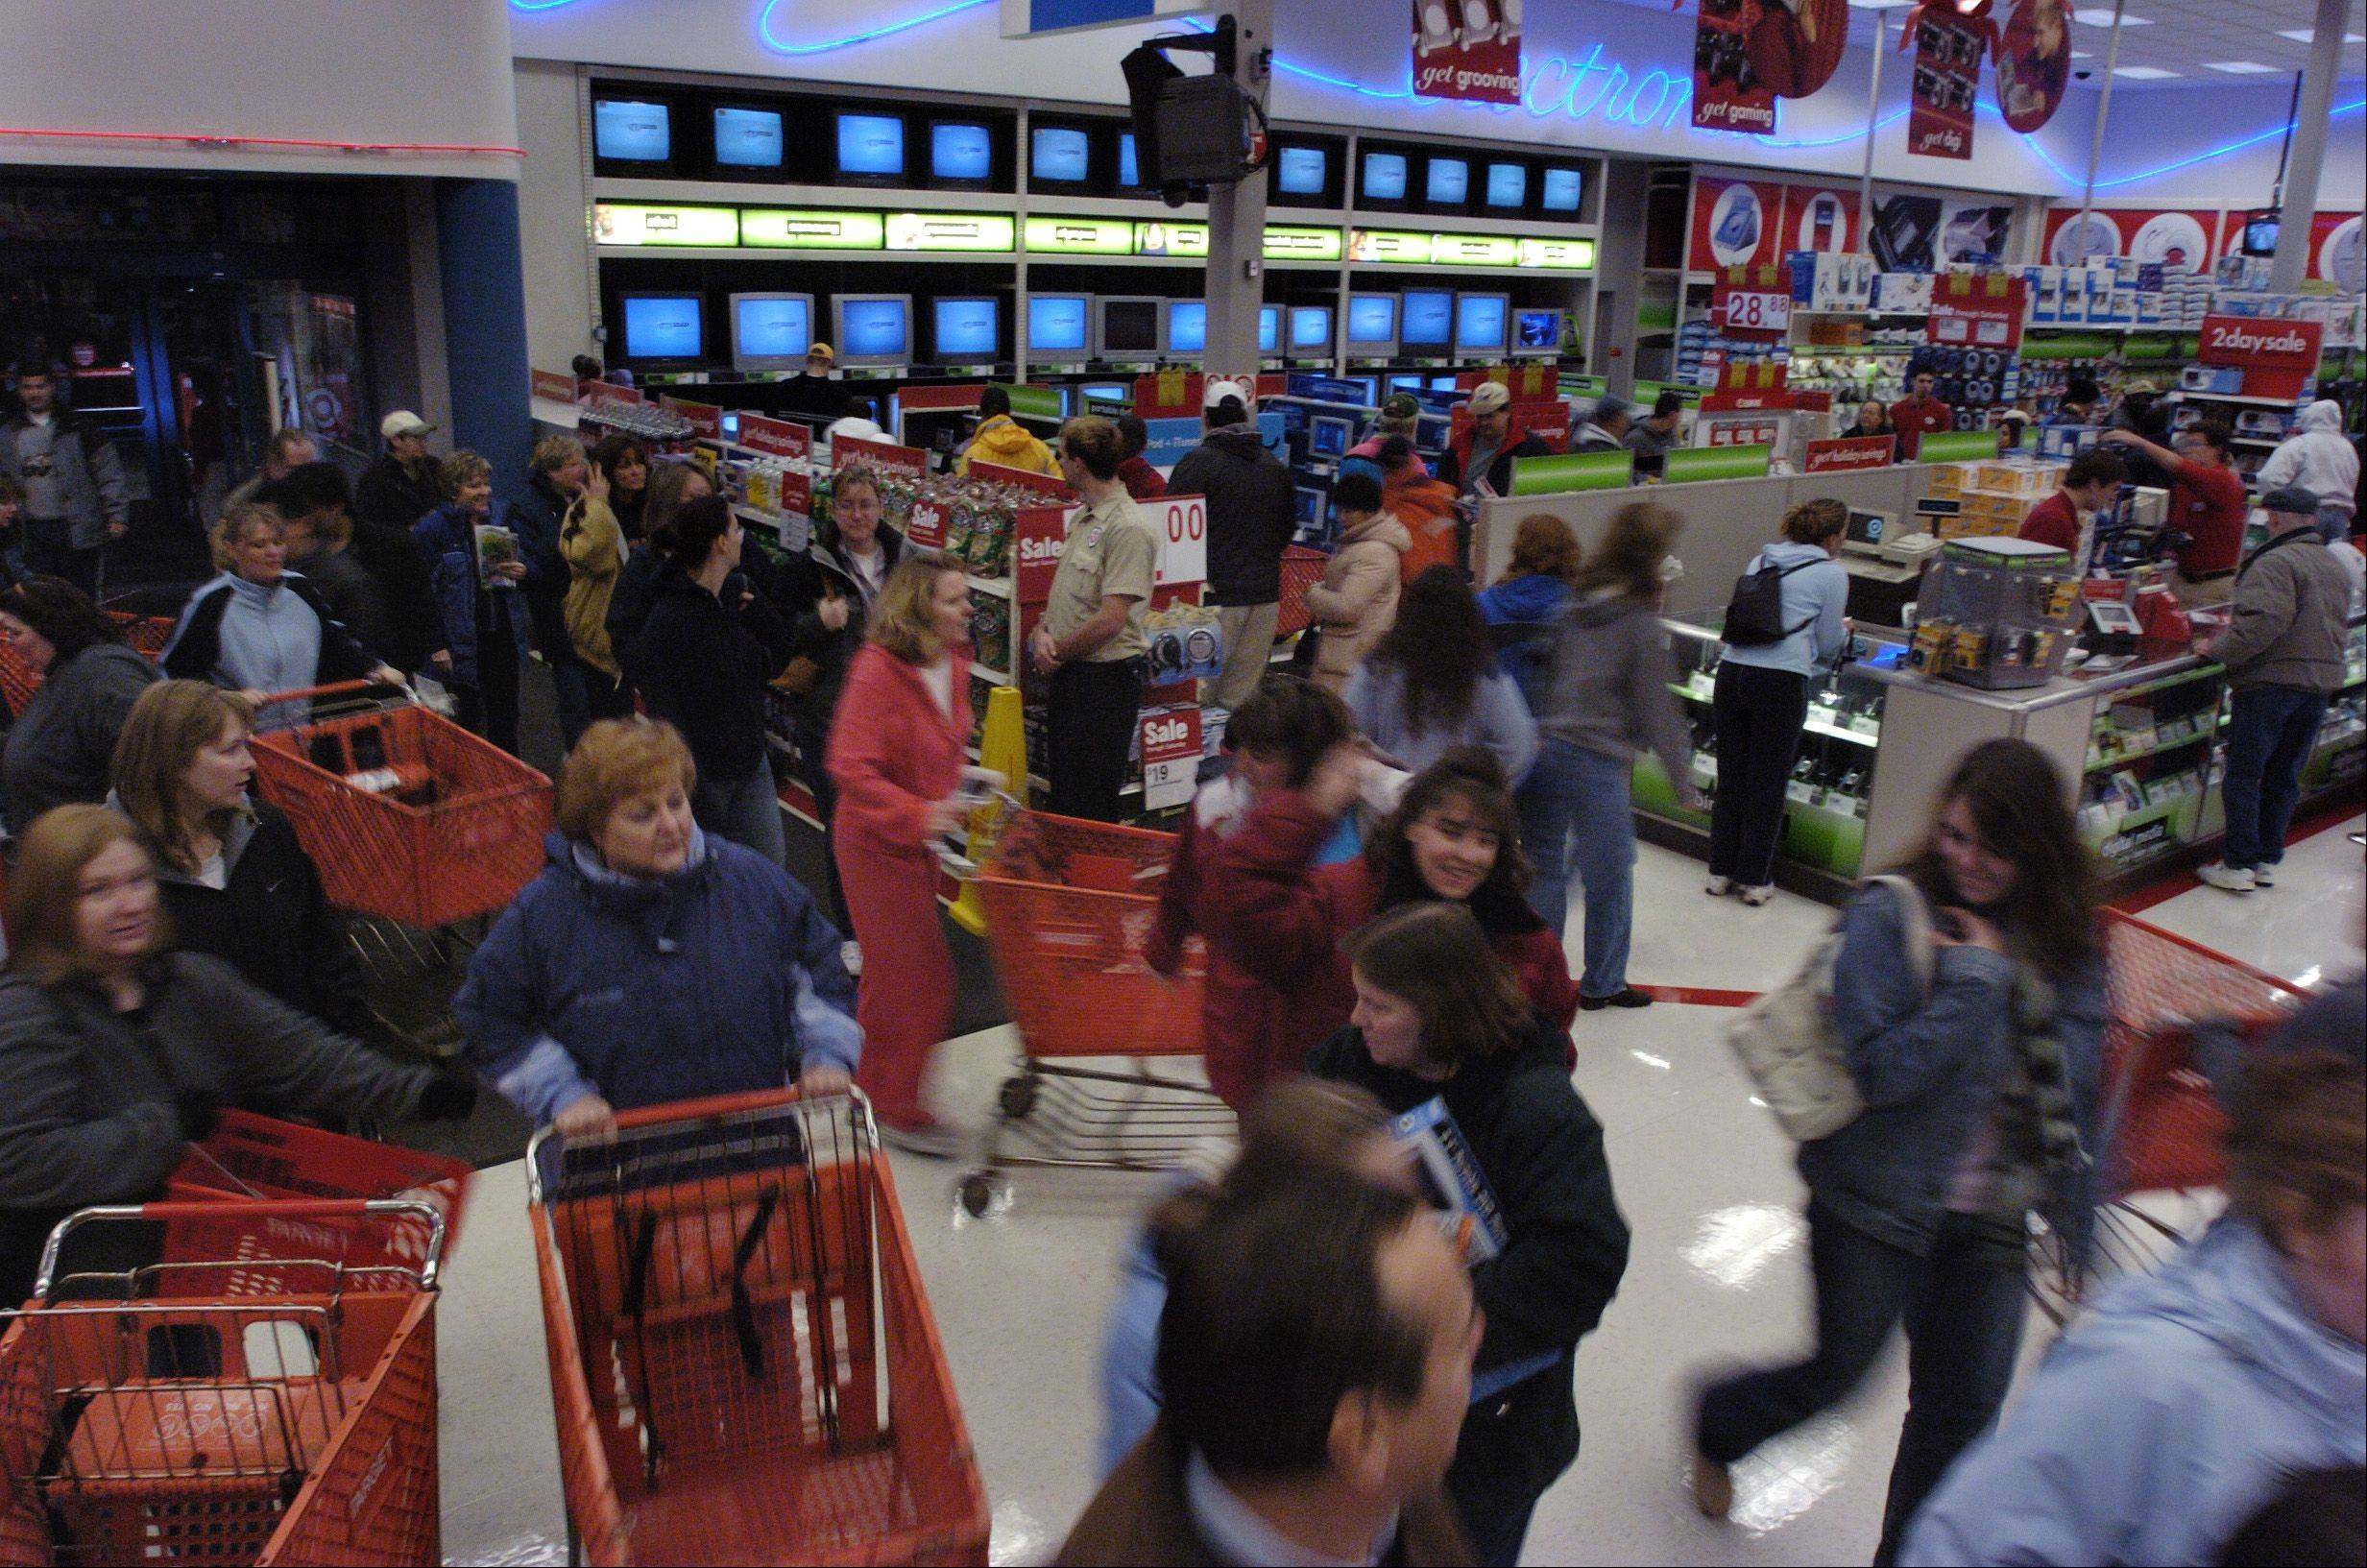 Shoppers pour into the Target store in West Dundee in hopes of getting the first bargains of the holiday shopping season.